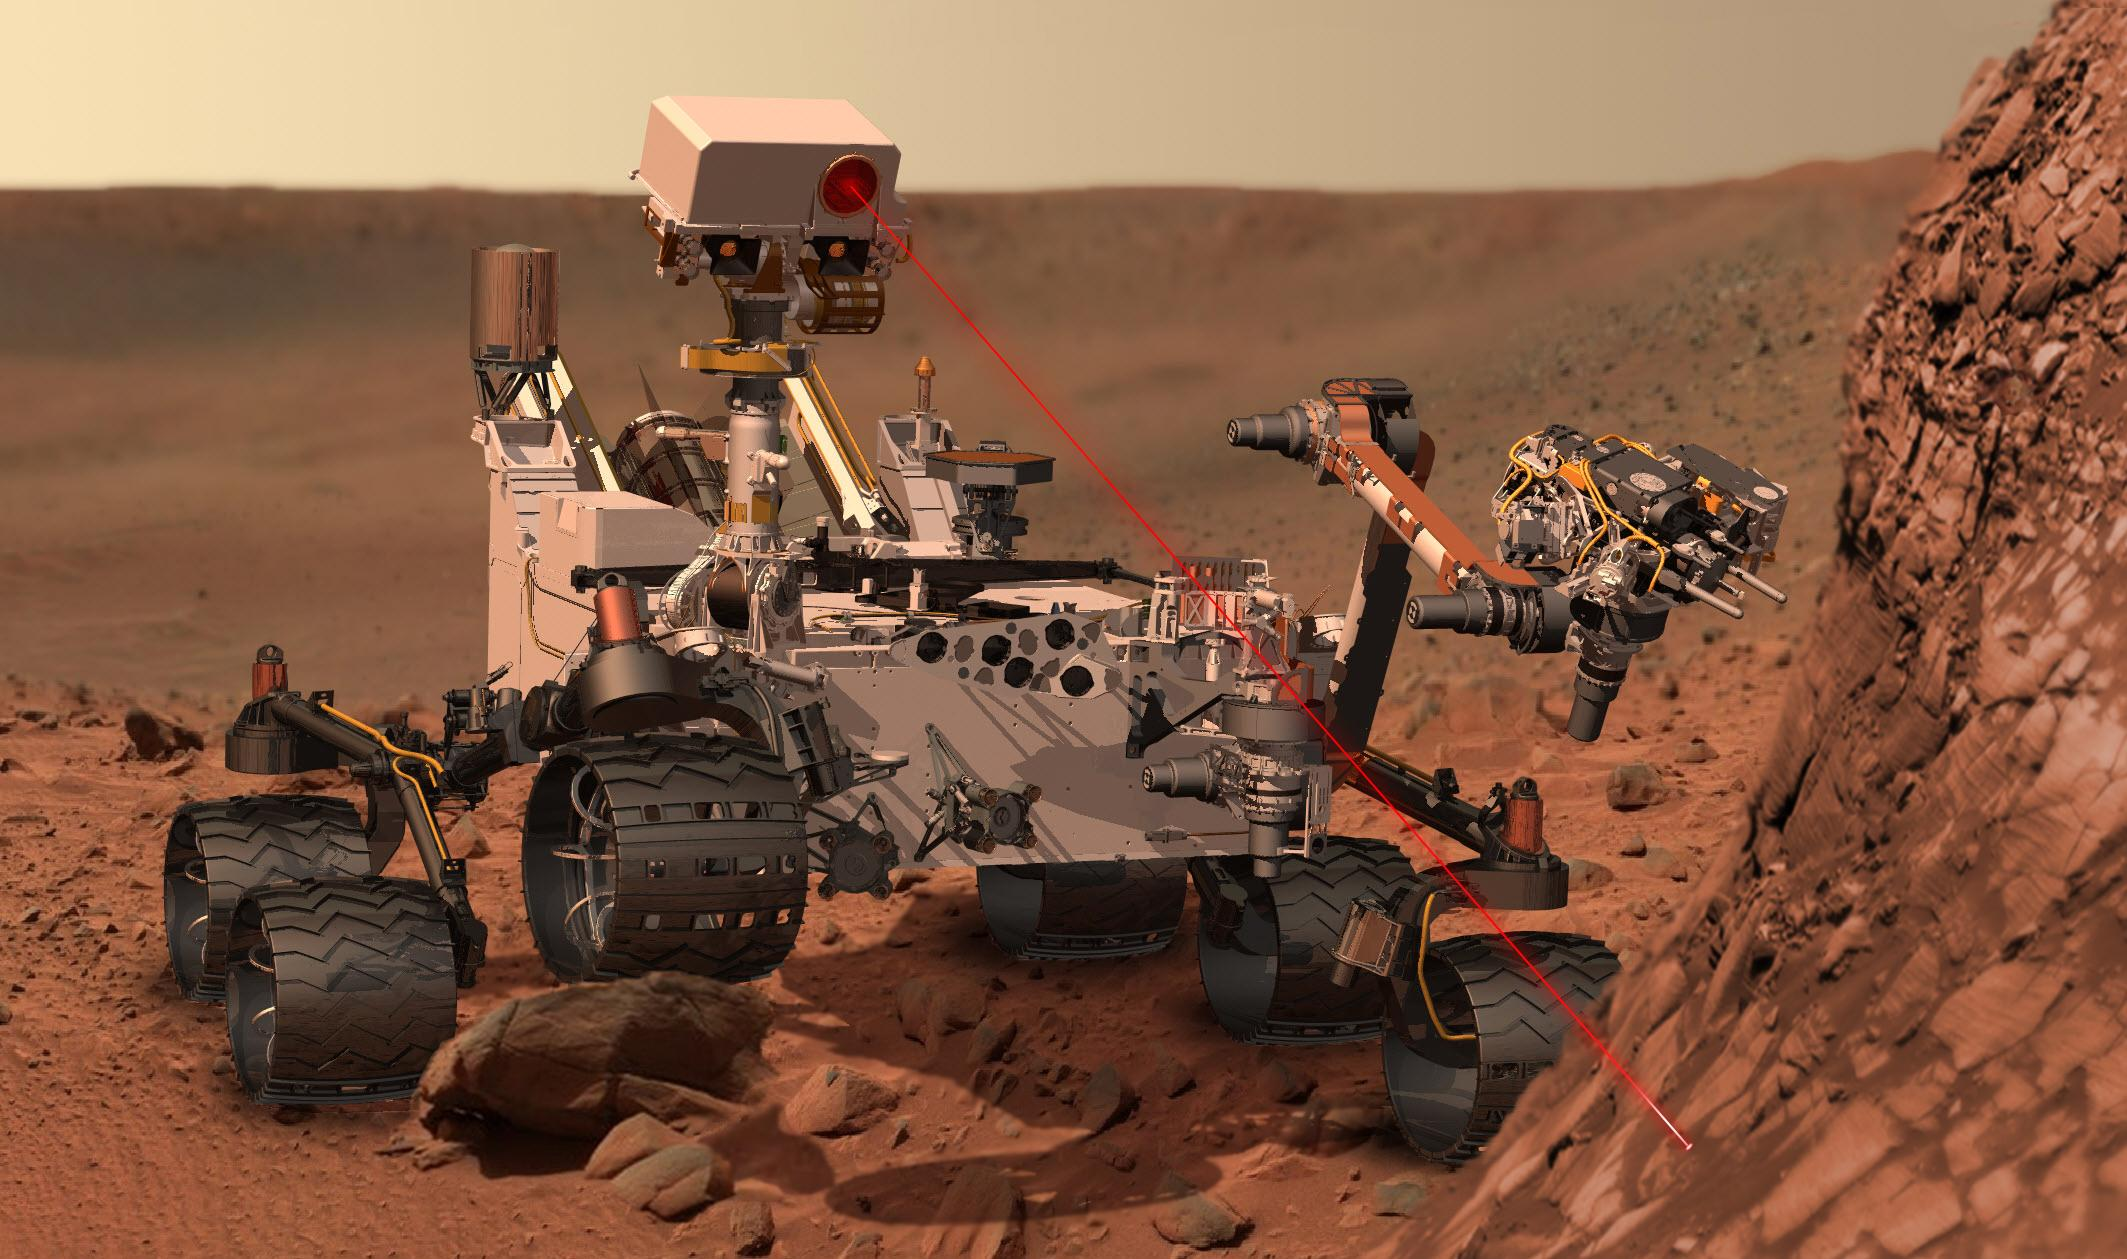 curiosity mars rover pictures - HD 2127×1259